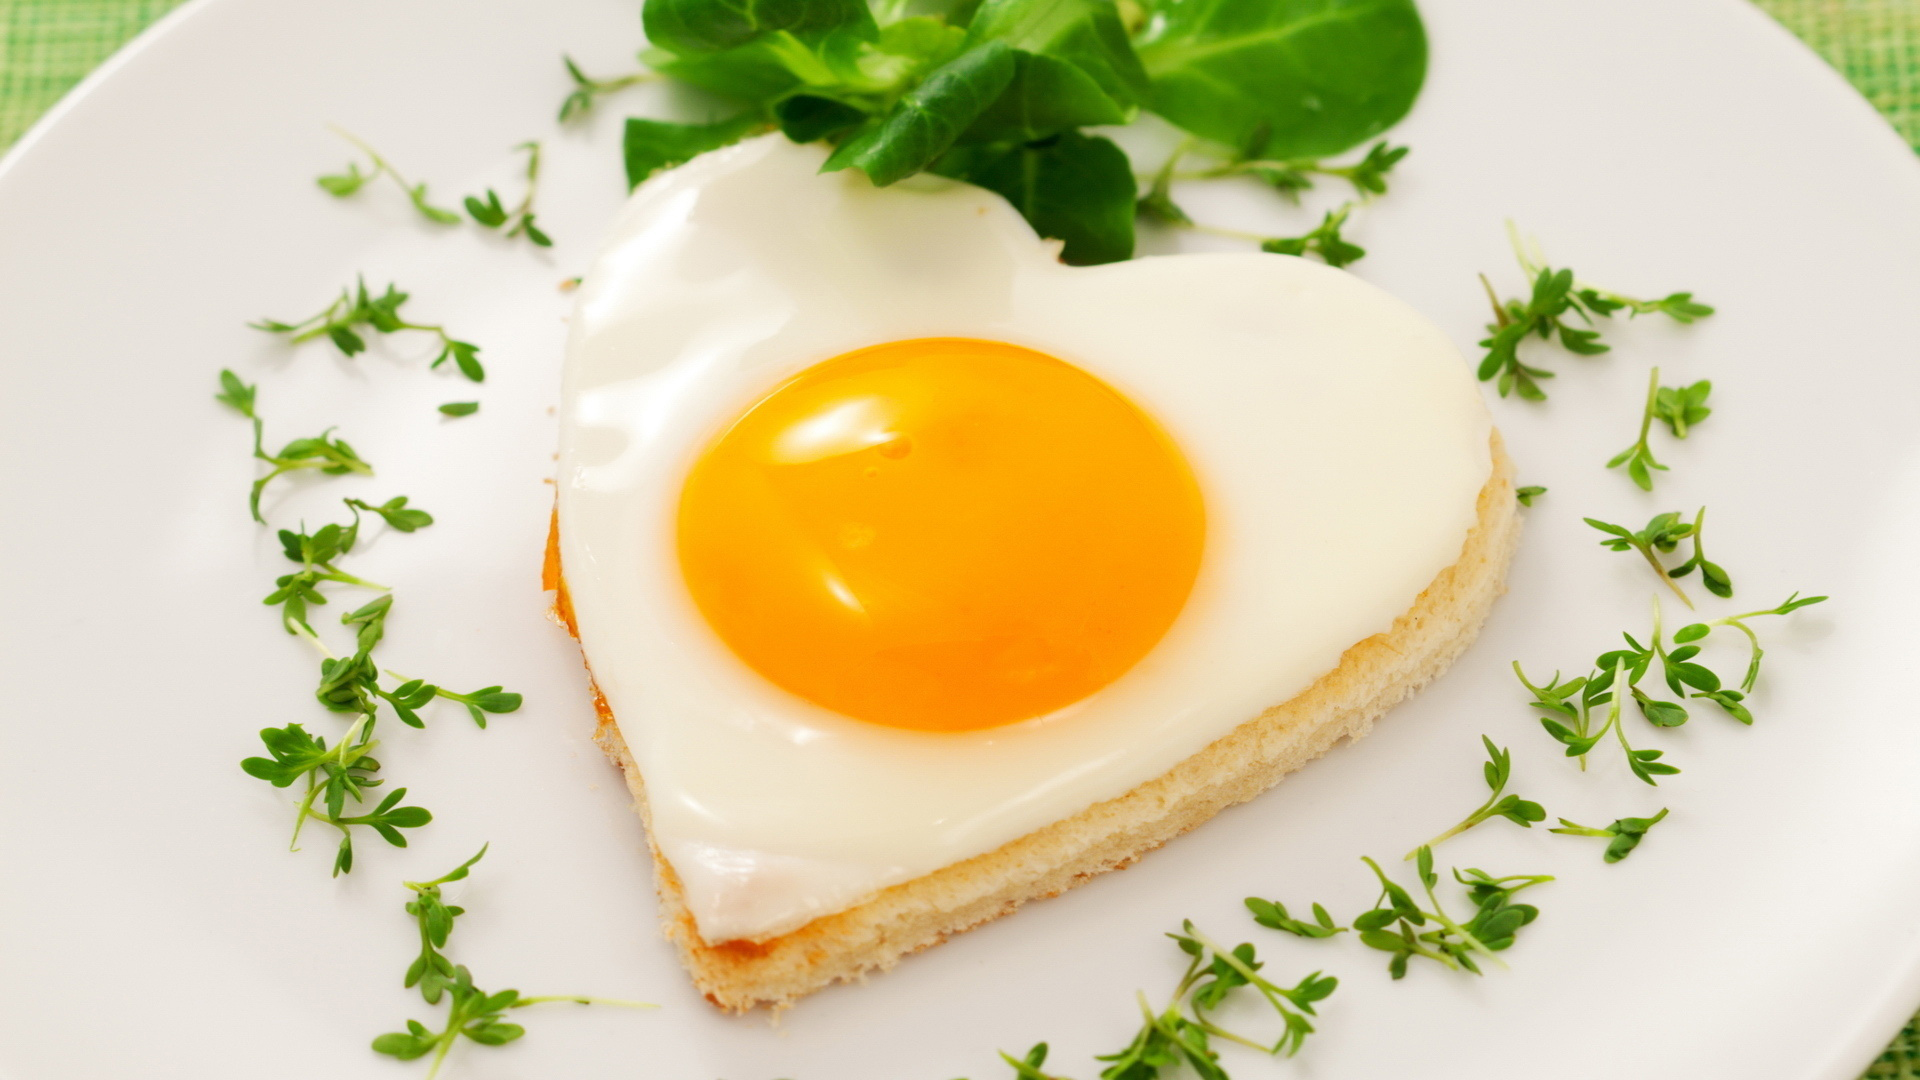 fried egg breakfast wallpaper 63315